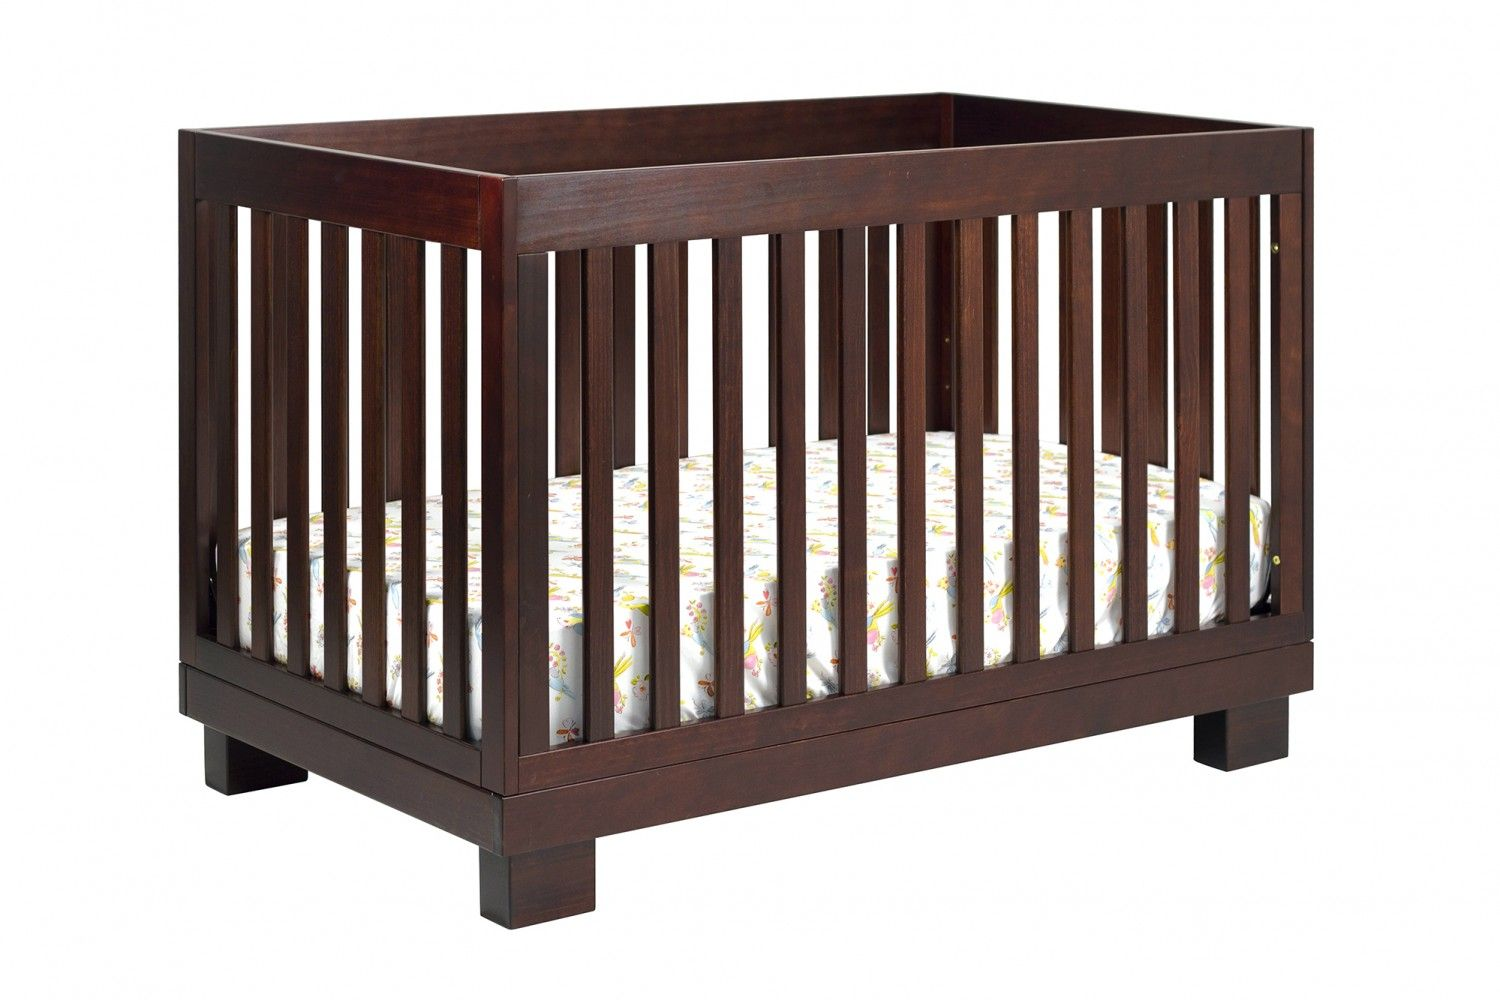 Modo 3 In 1 Convertible Crib With Toddler Bed Conversion Kit With Images Convertible Crib Modern Crib Cribs